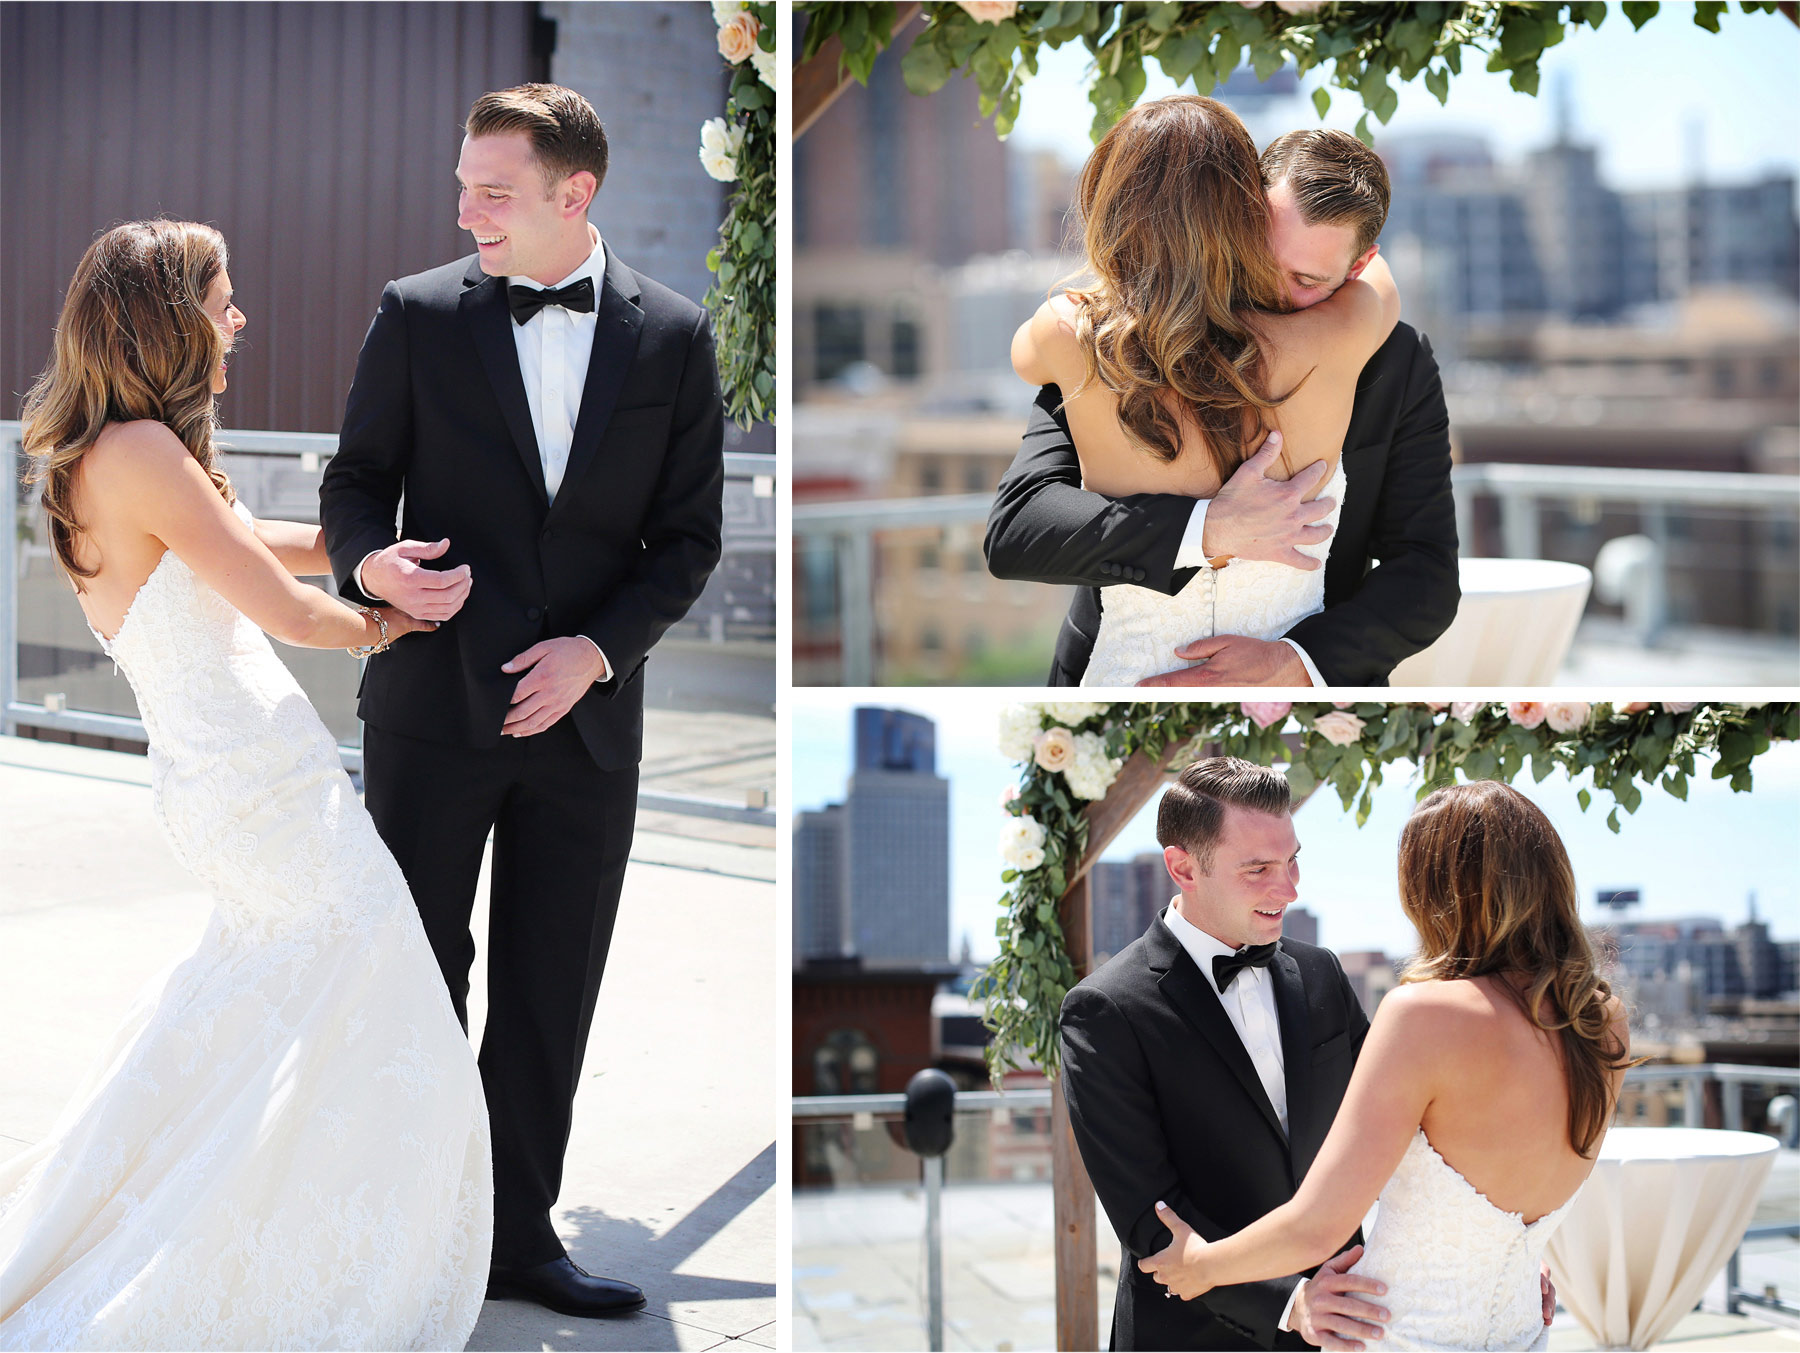 07-Saint-Paul-Minnesota-Wedding-Photographer-by-Andrew-Vick-Photography-Summer-Abulae-First-Meeting-Bride-Groom-Excited-Hug-Embrace-Molly-and-Dan.jpg